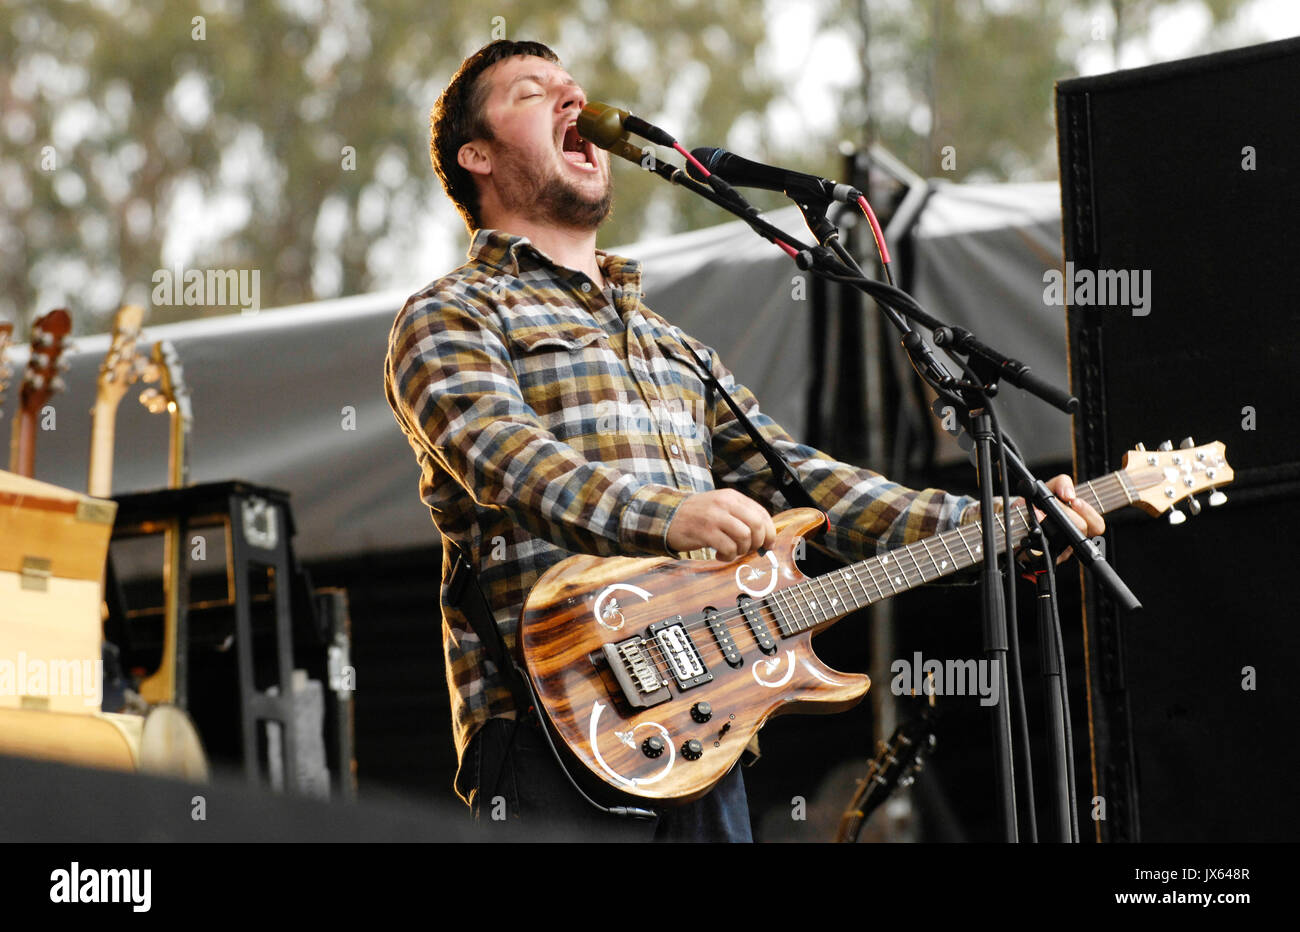 Isaac Brock Modest Mouse performs 2009 Outside Lands Festival Golden Gate Park August 30,2009 San Francisco. - Stock Image